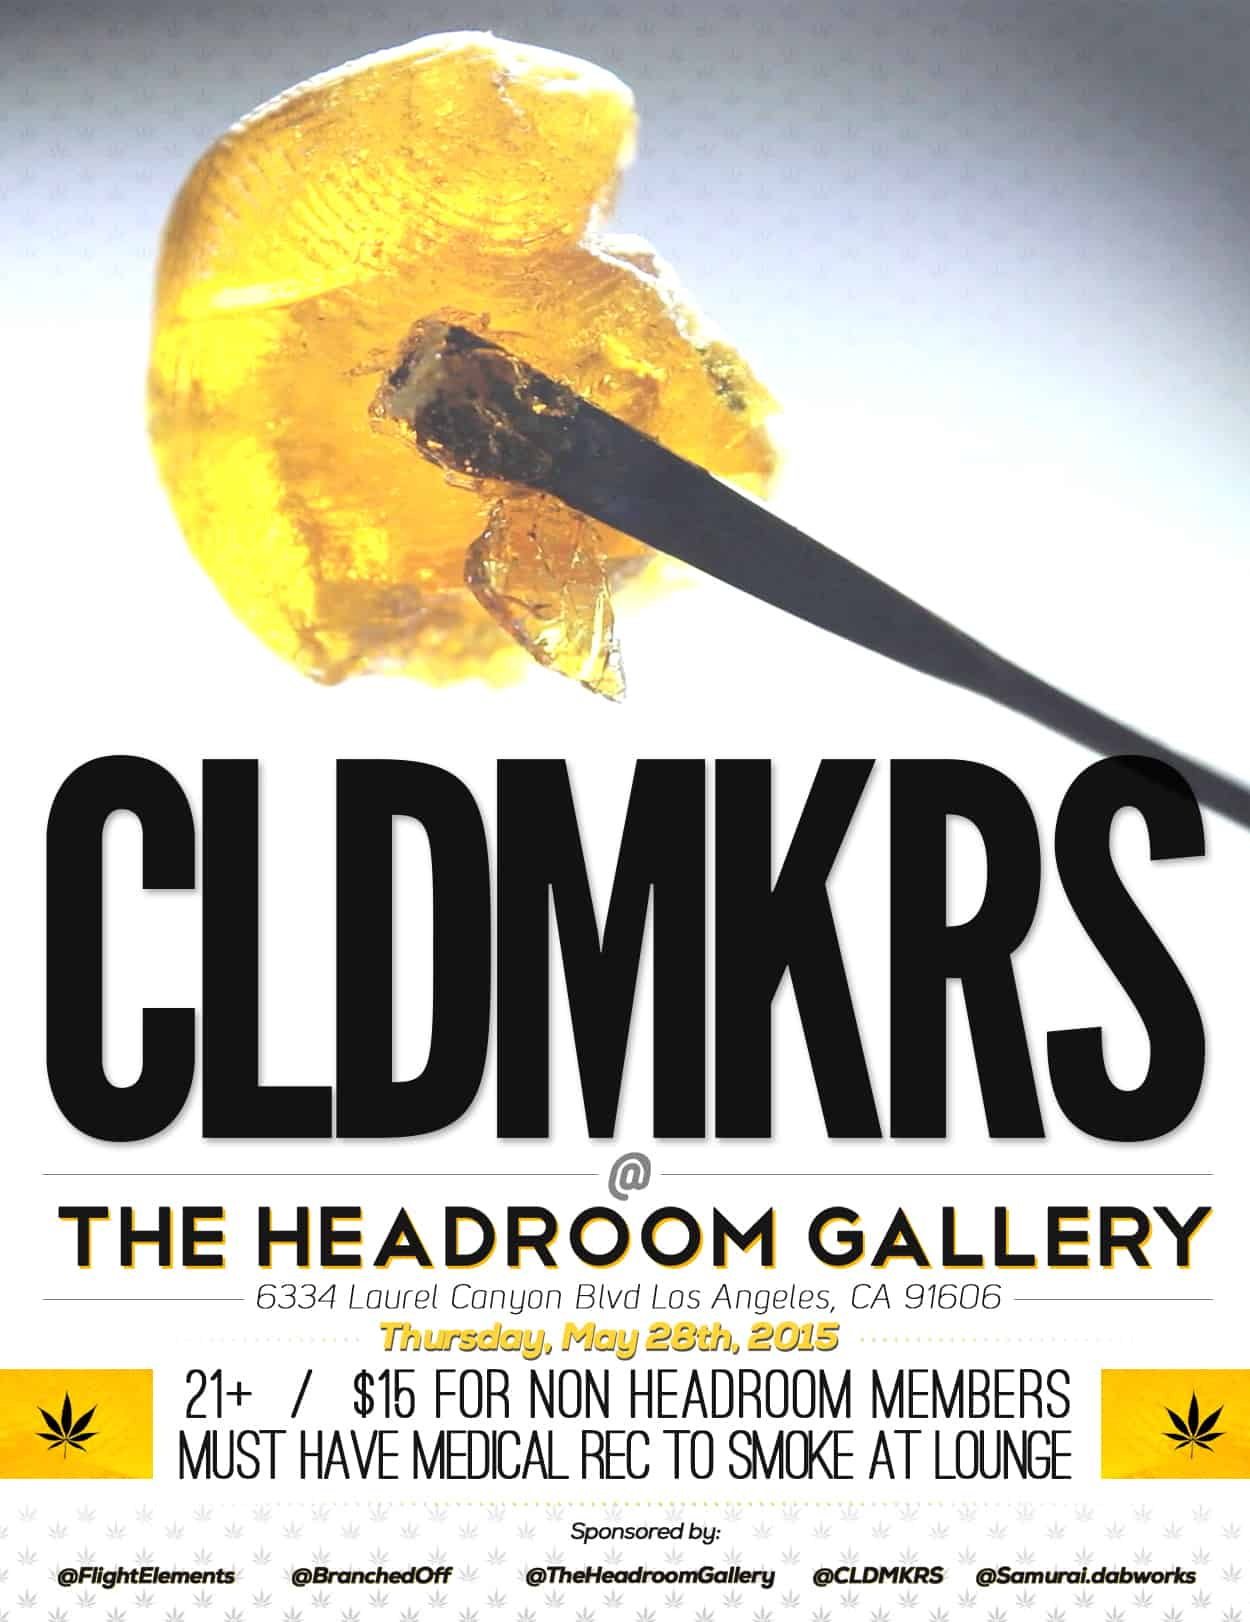 cldmkrs - headroom gallery - flyer design